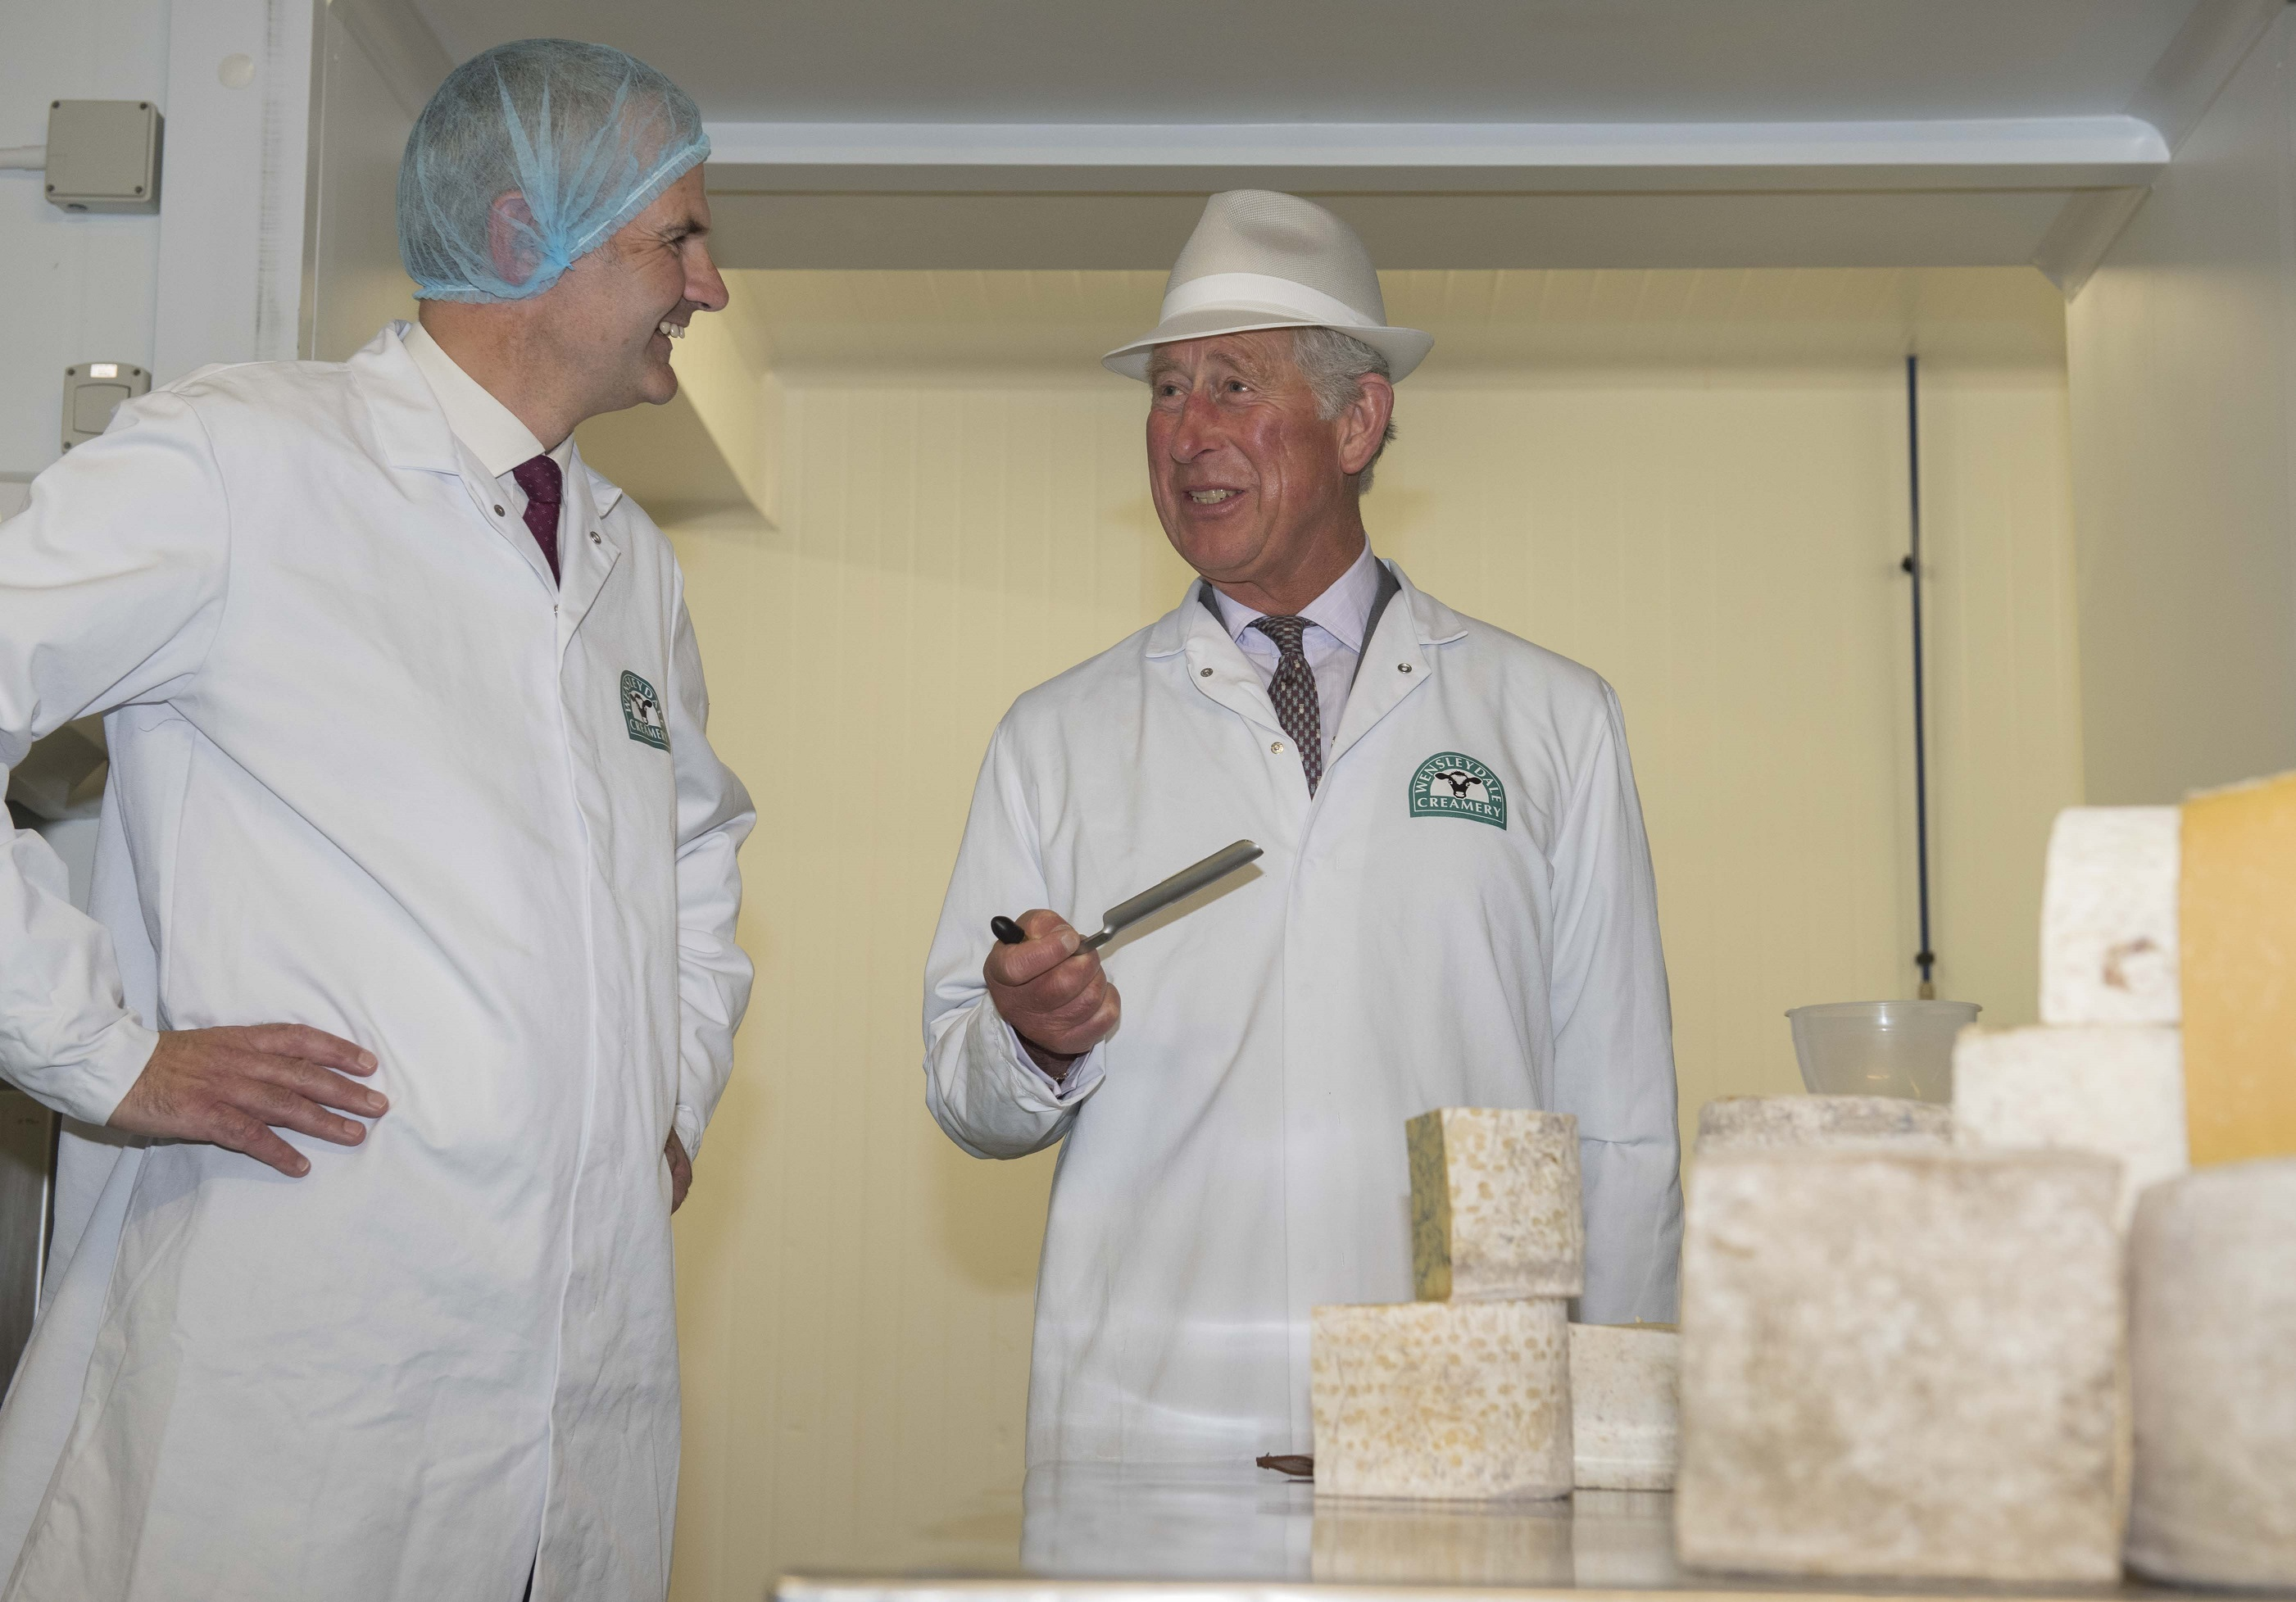 HRH The Prince of Wales Visits The Wensleydale Creamery & Sees The Art of Cheese Grading